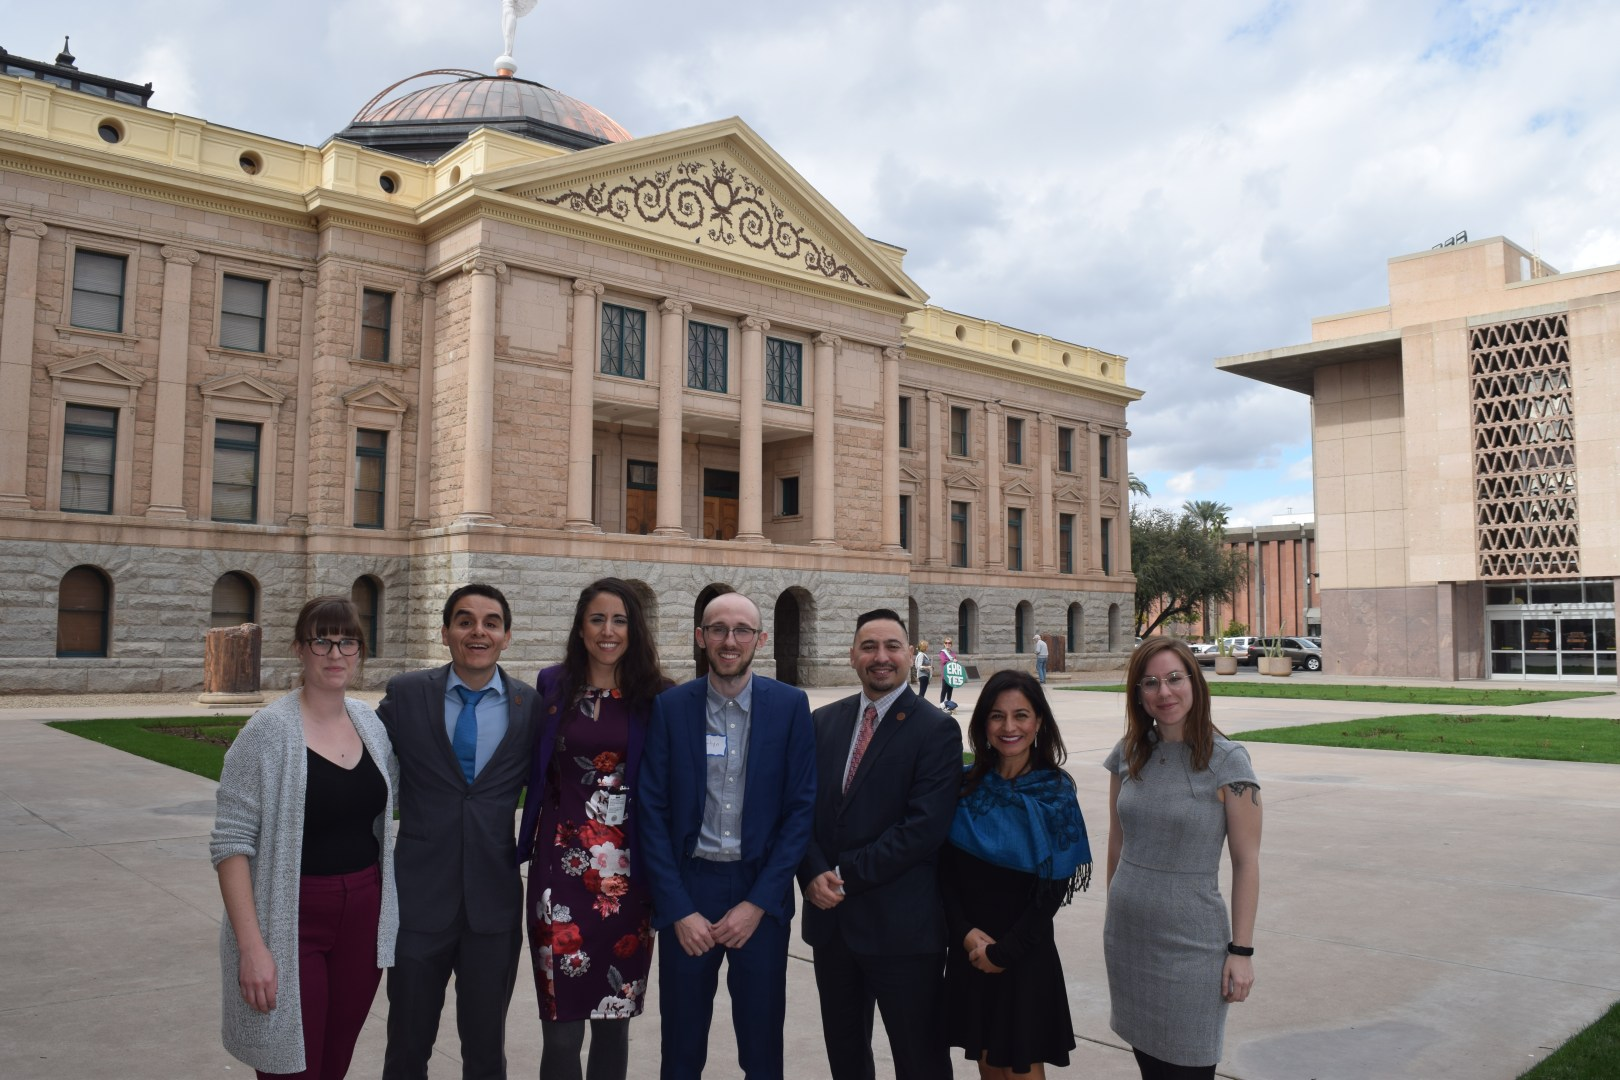 A group of 7 people in business attire standing outside in front of the Arizona state capitol building.